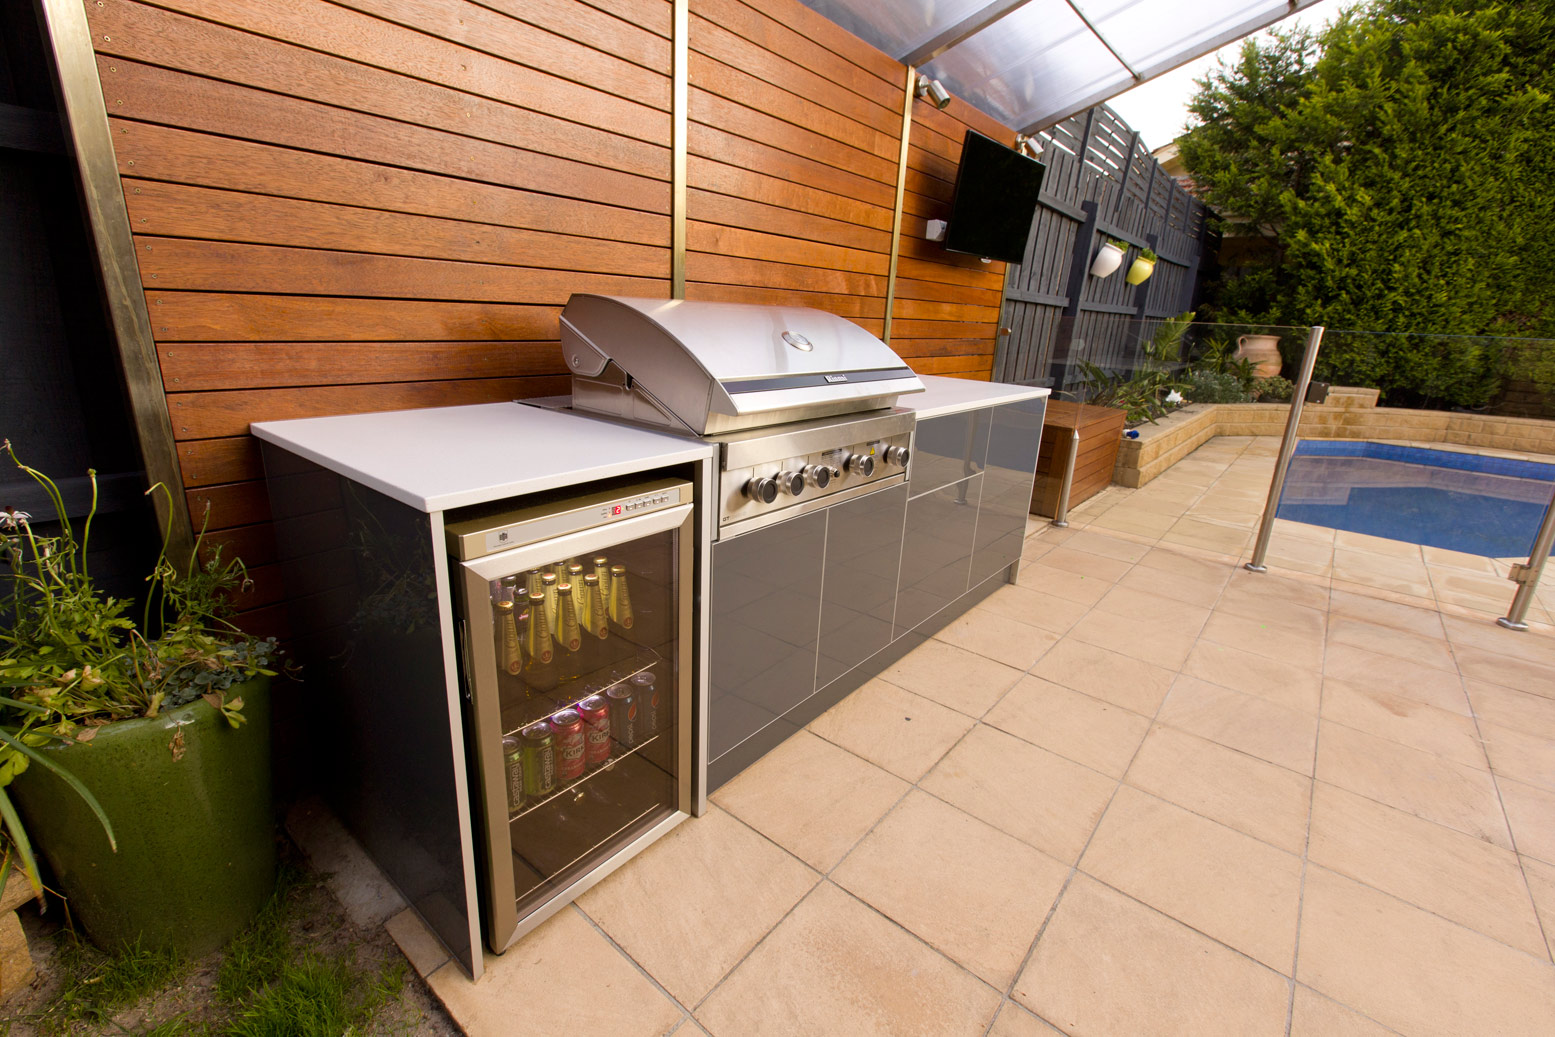 The various recommendations and ideas of the materials of for Backyard barbecues outdoor kitchen